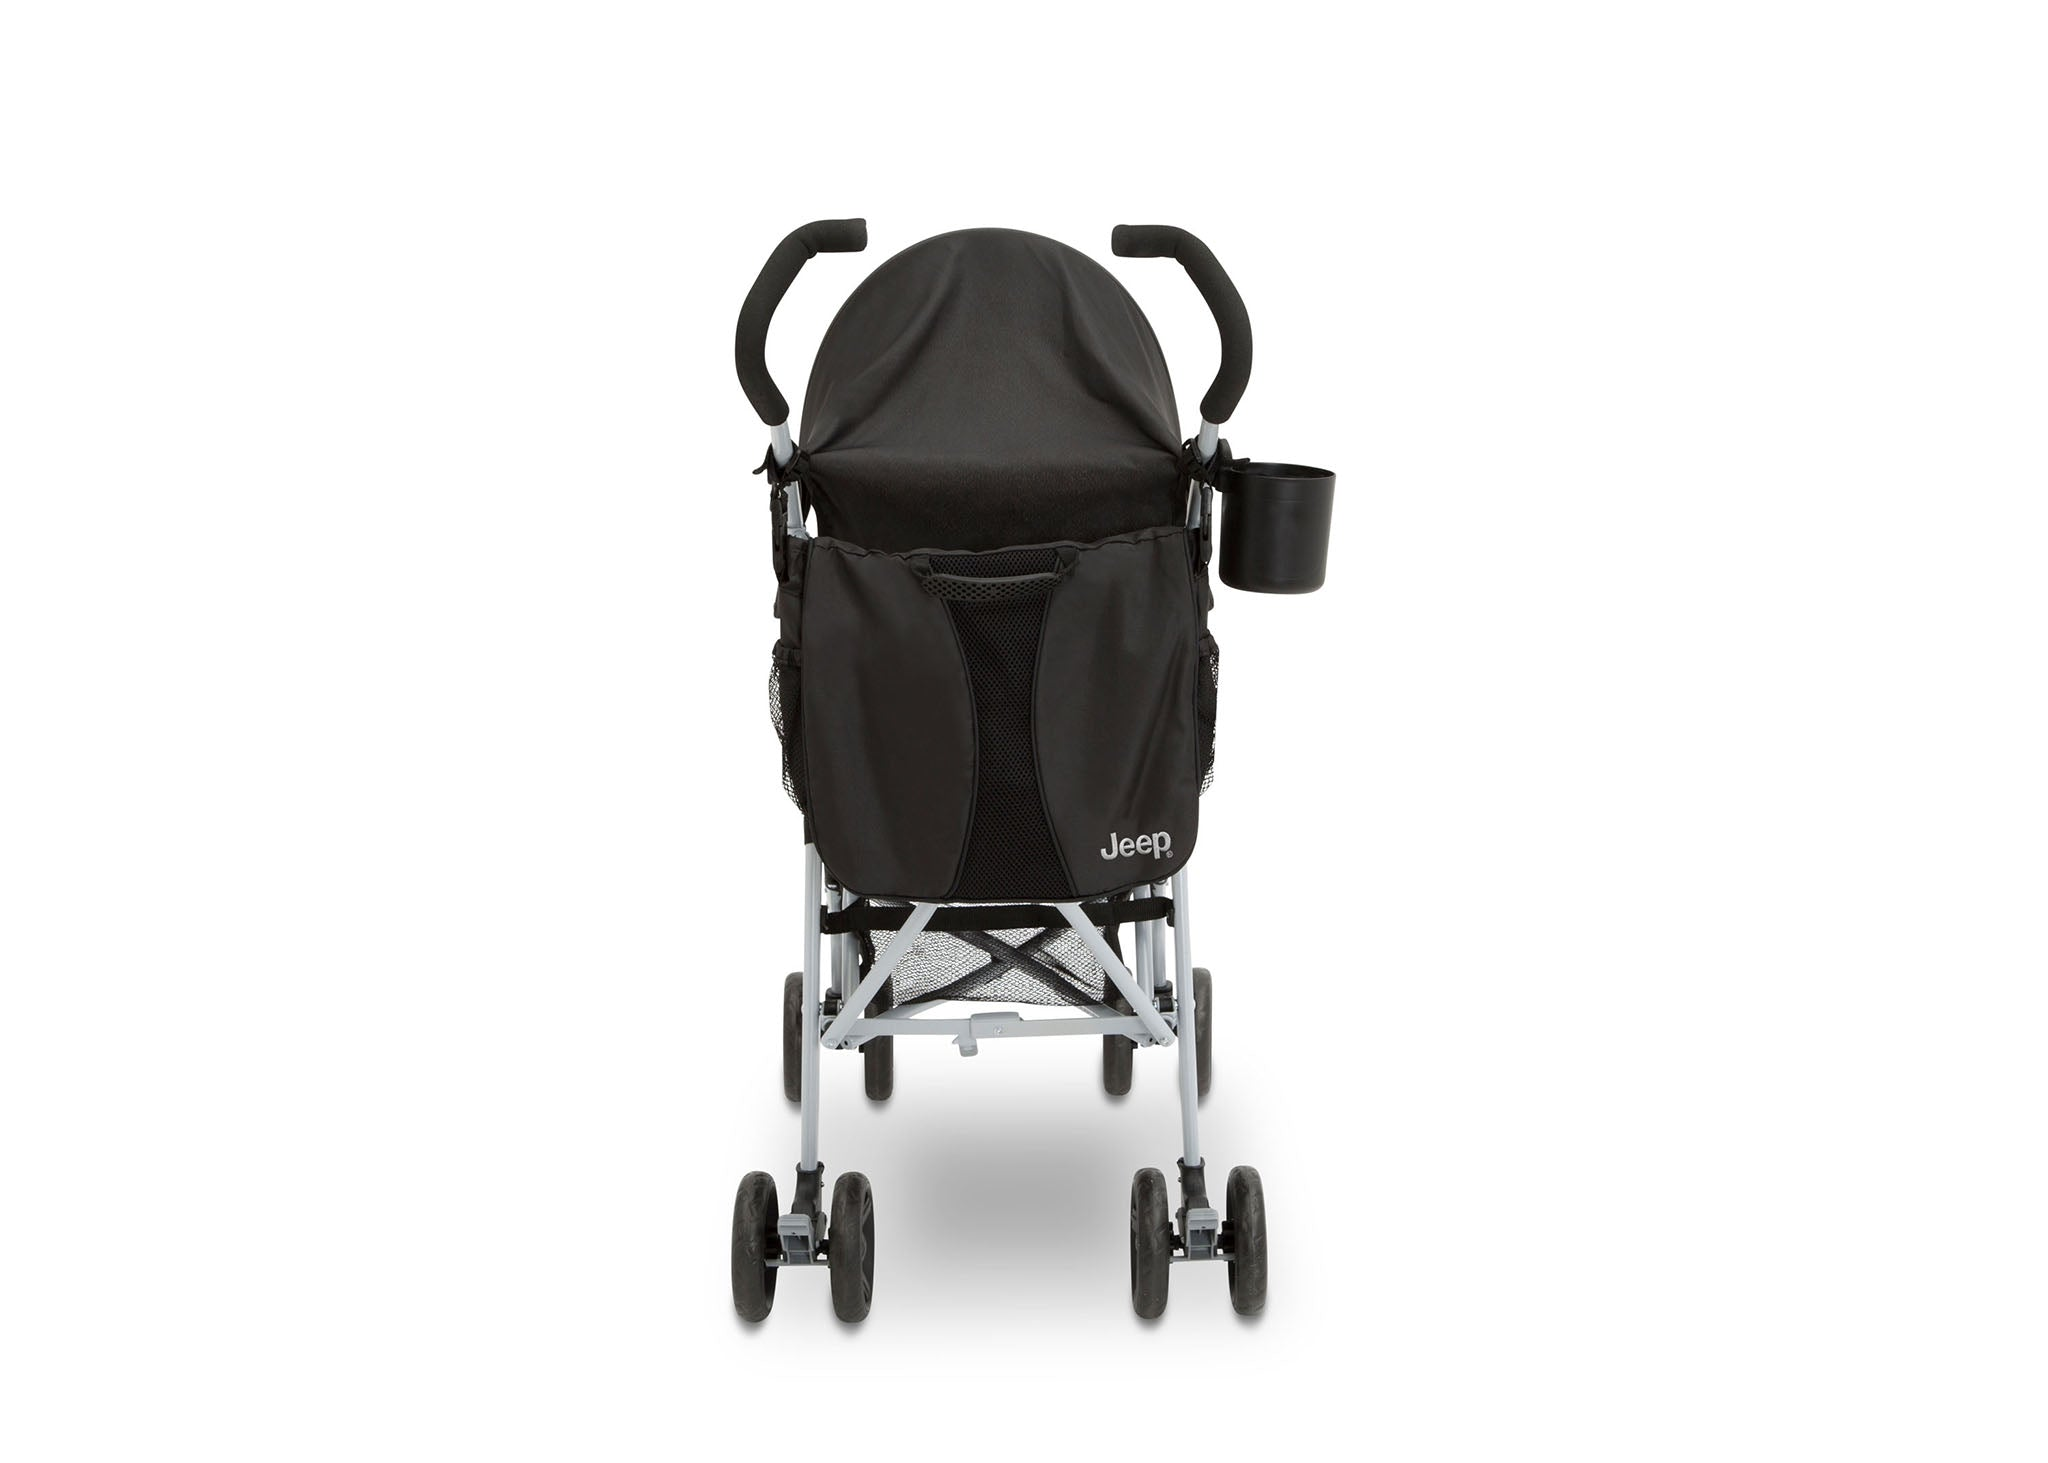 Jeep North Star Stroller by Delta Children, Black with Neutral Grey (2277), with Parent cup holder and easy-grip, extra-long foam handles